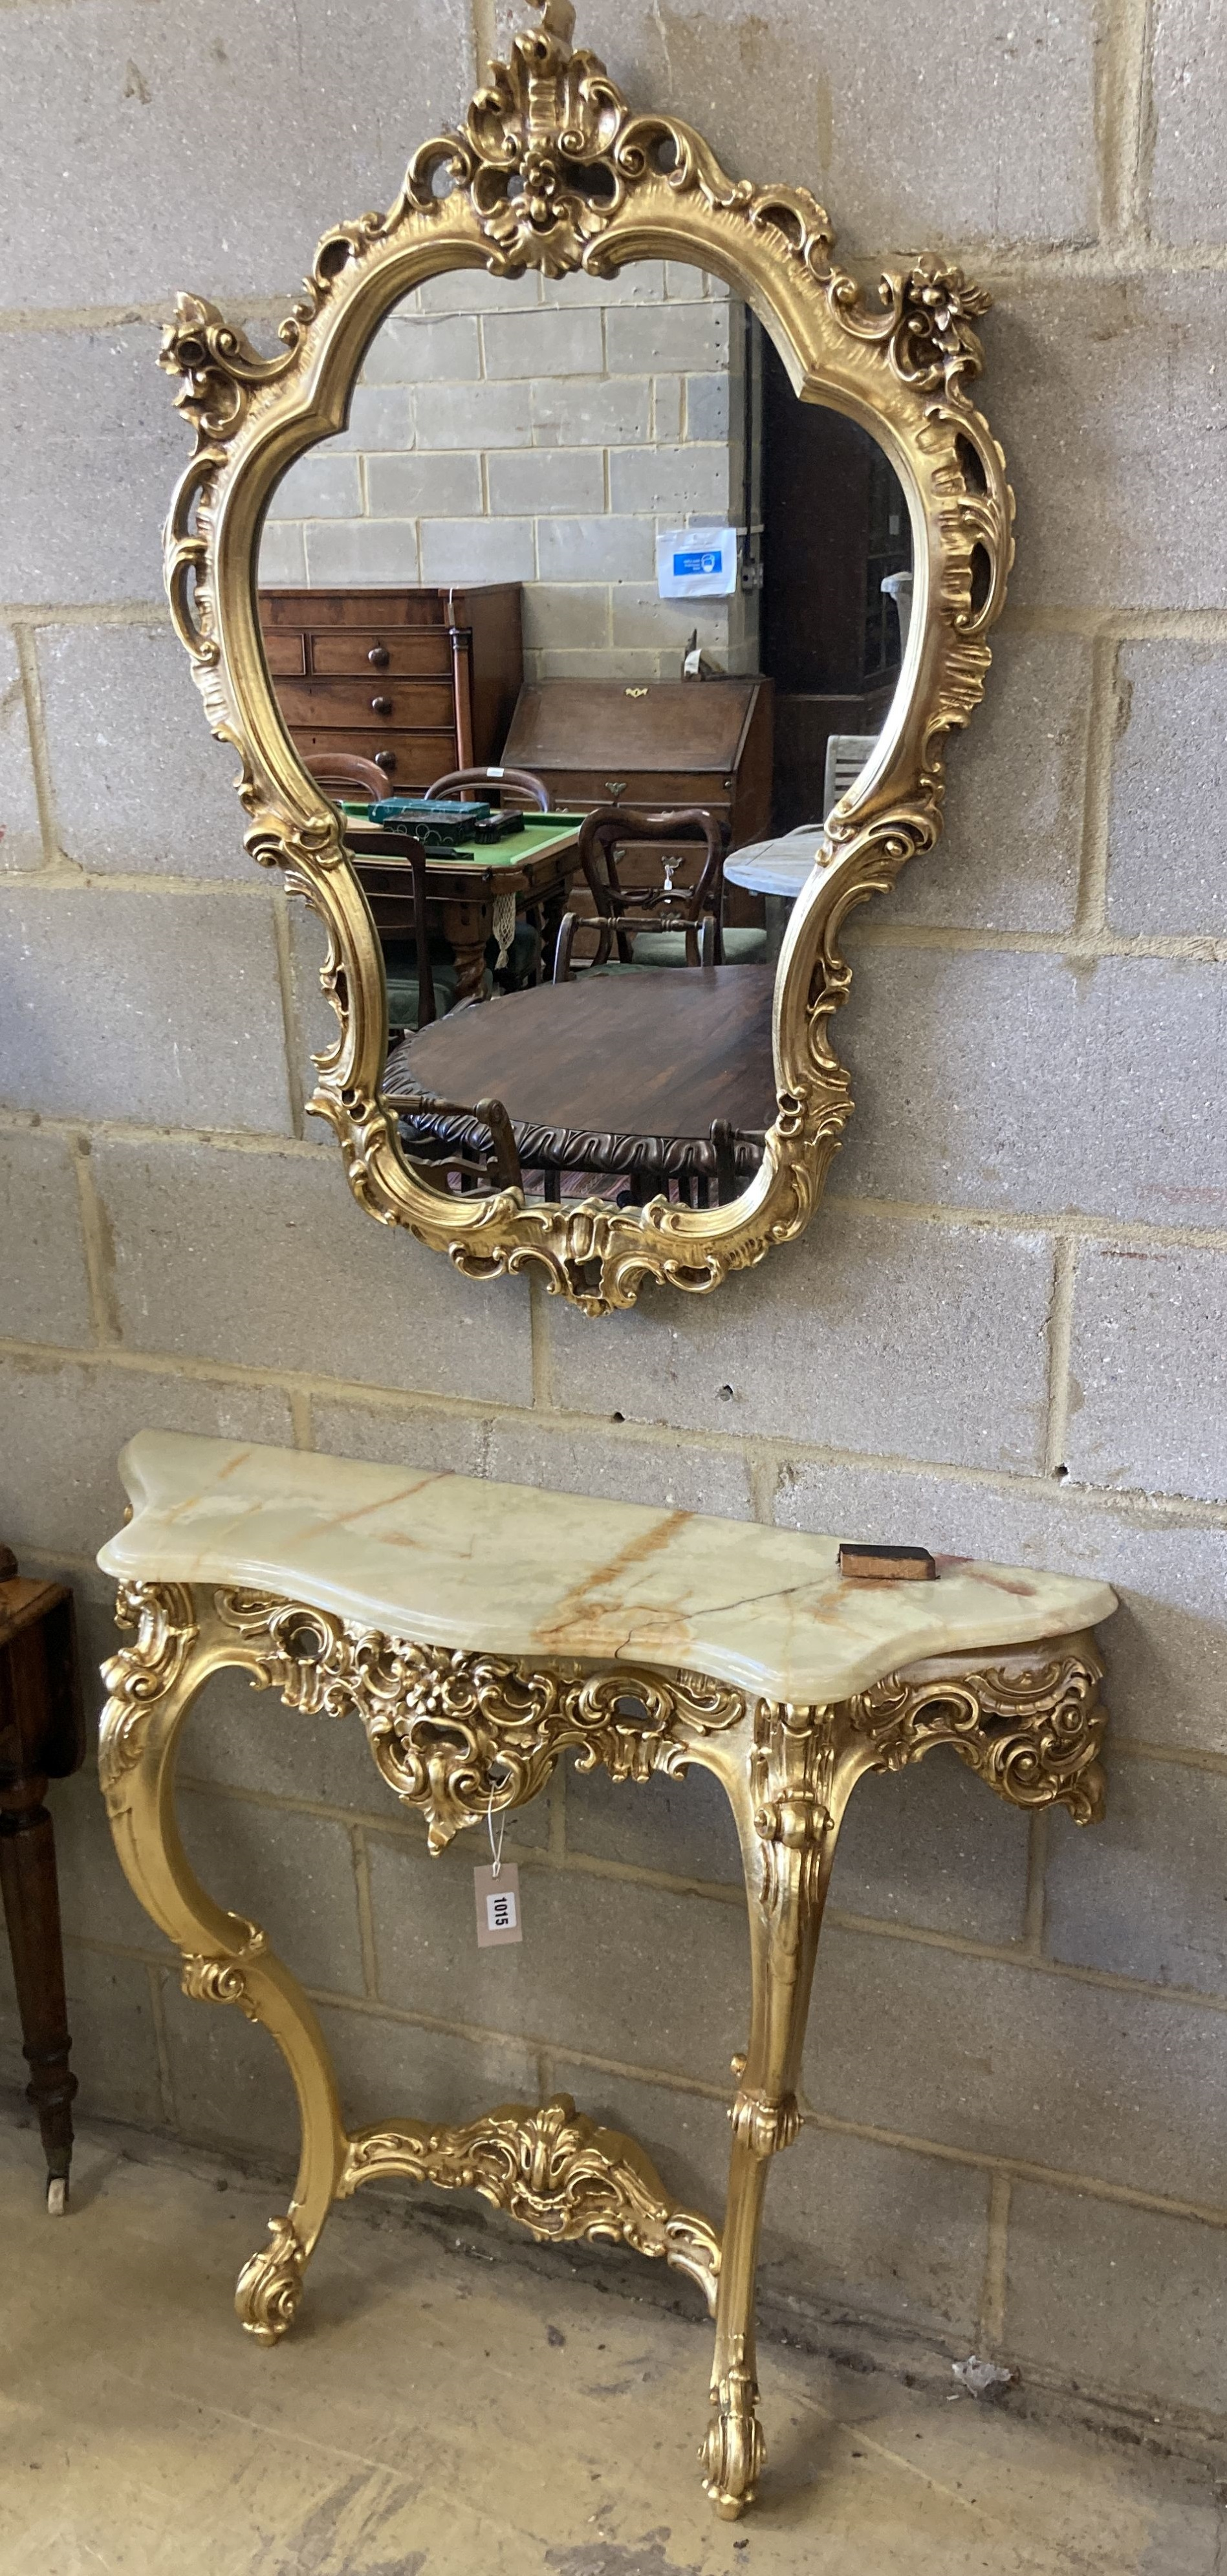 An 18th century style onyx topped gilt console table, width 94cm, depth 29cm, height 87cm with